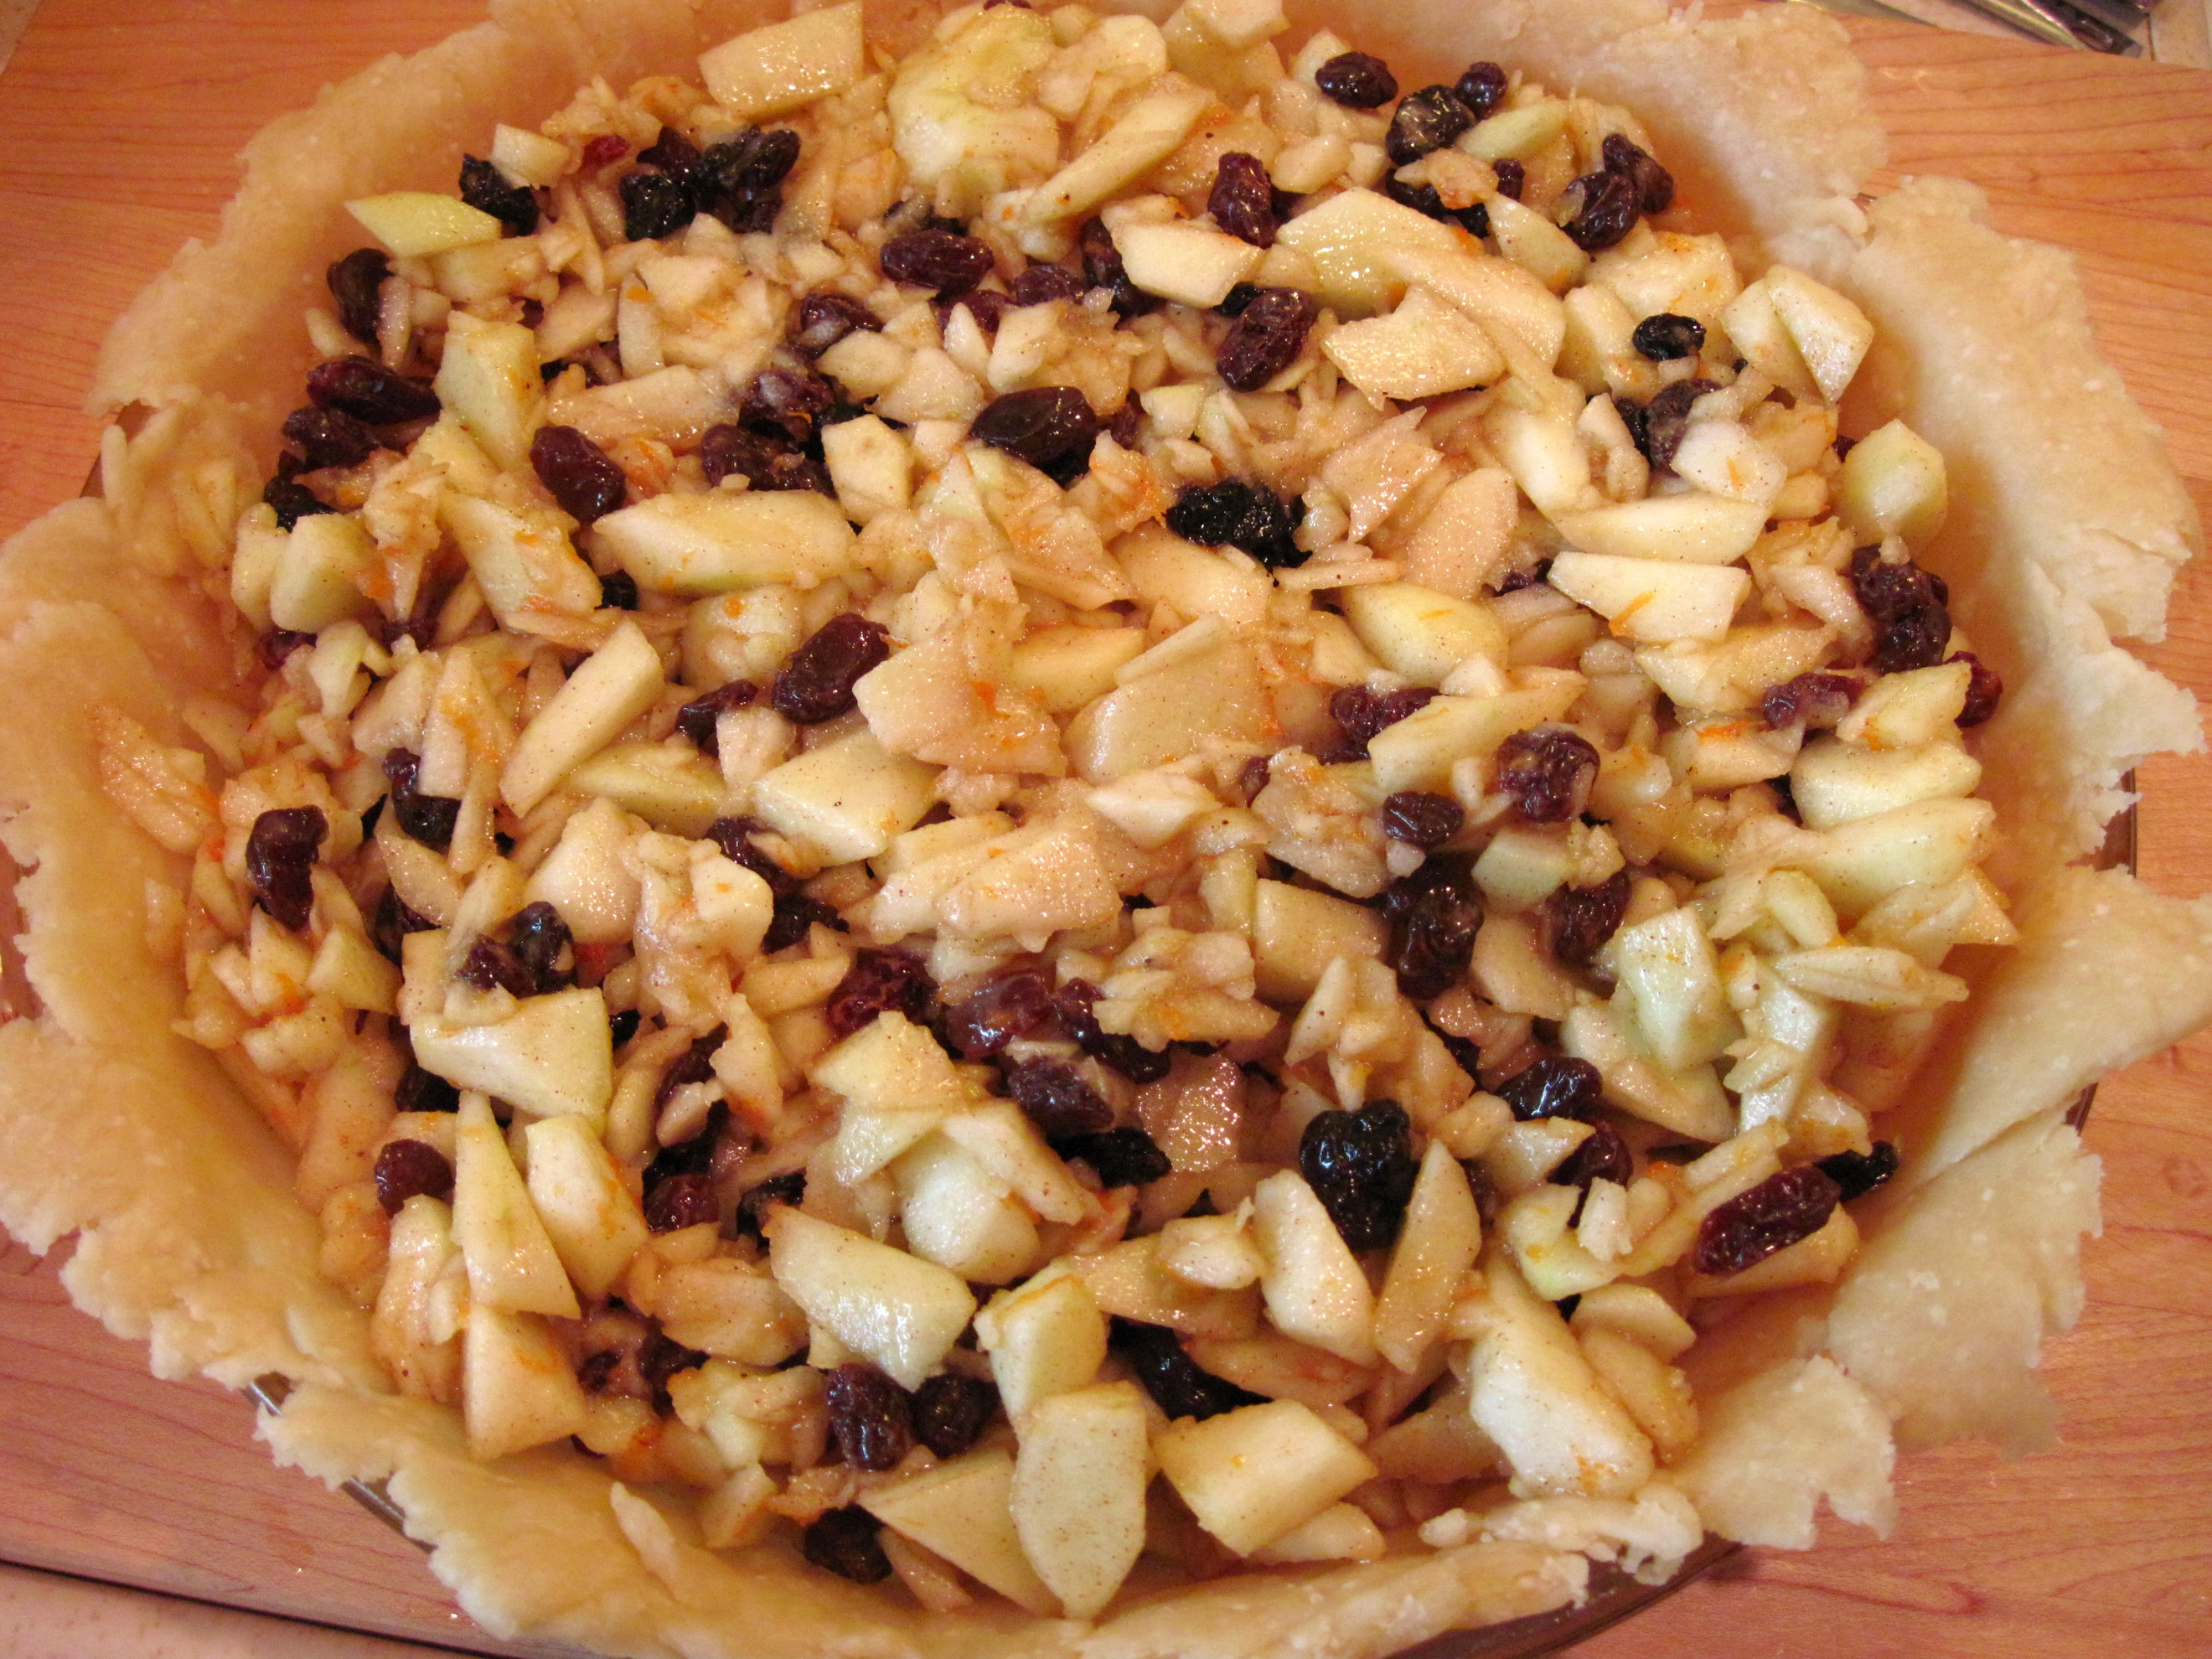 Mock Mincemeat Pie | In the kitchen with Kath